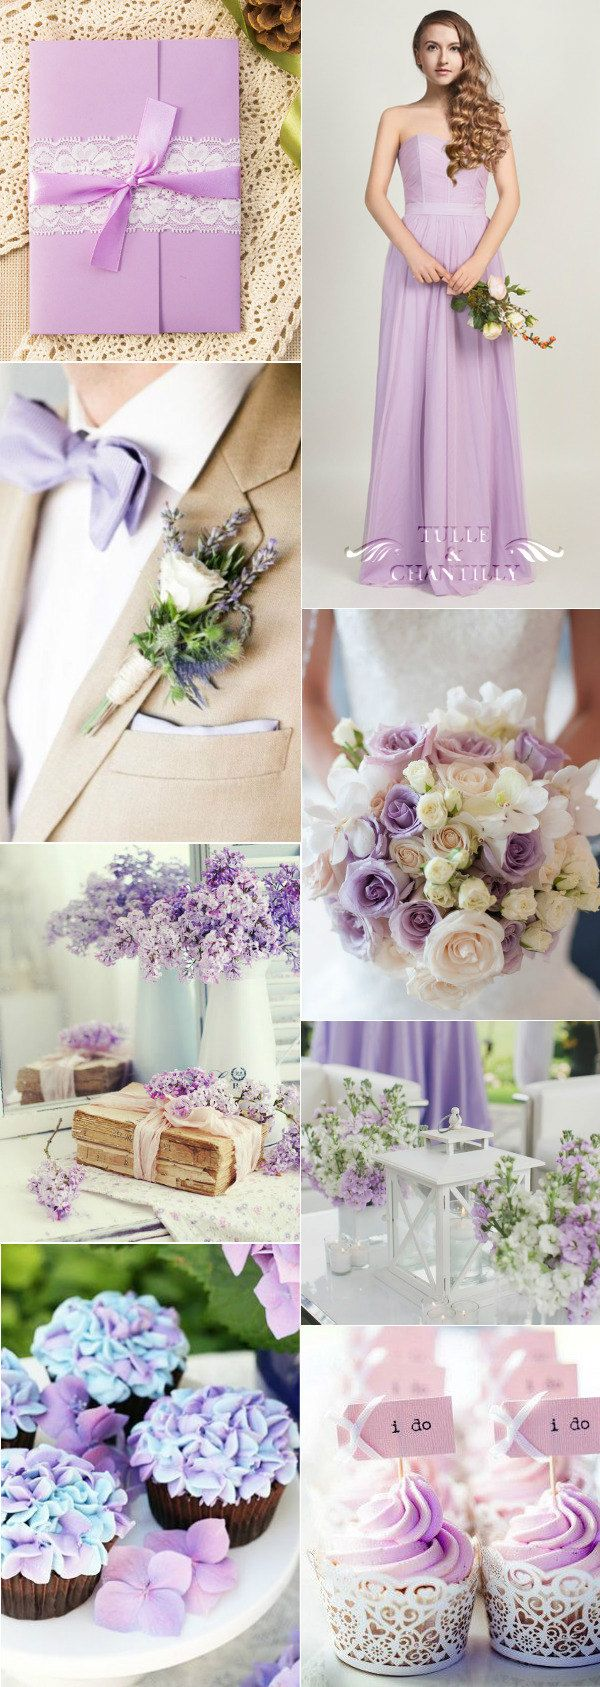 36 Glamorous Purple Wedding Ideas | Light purple wedding, Purple ...